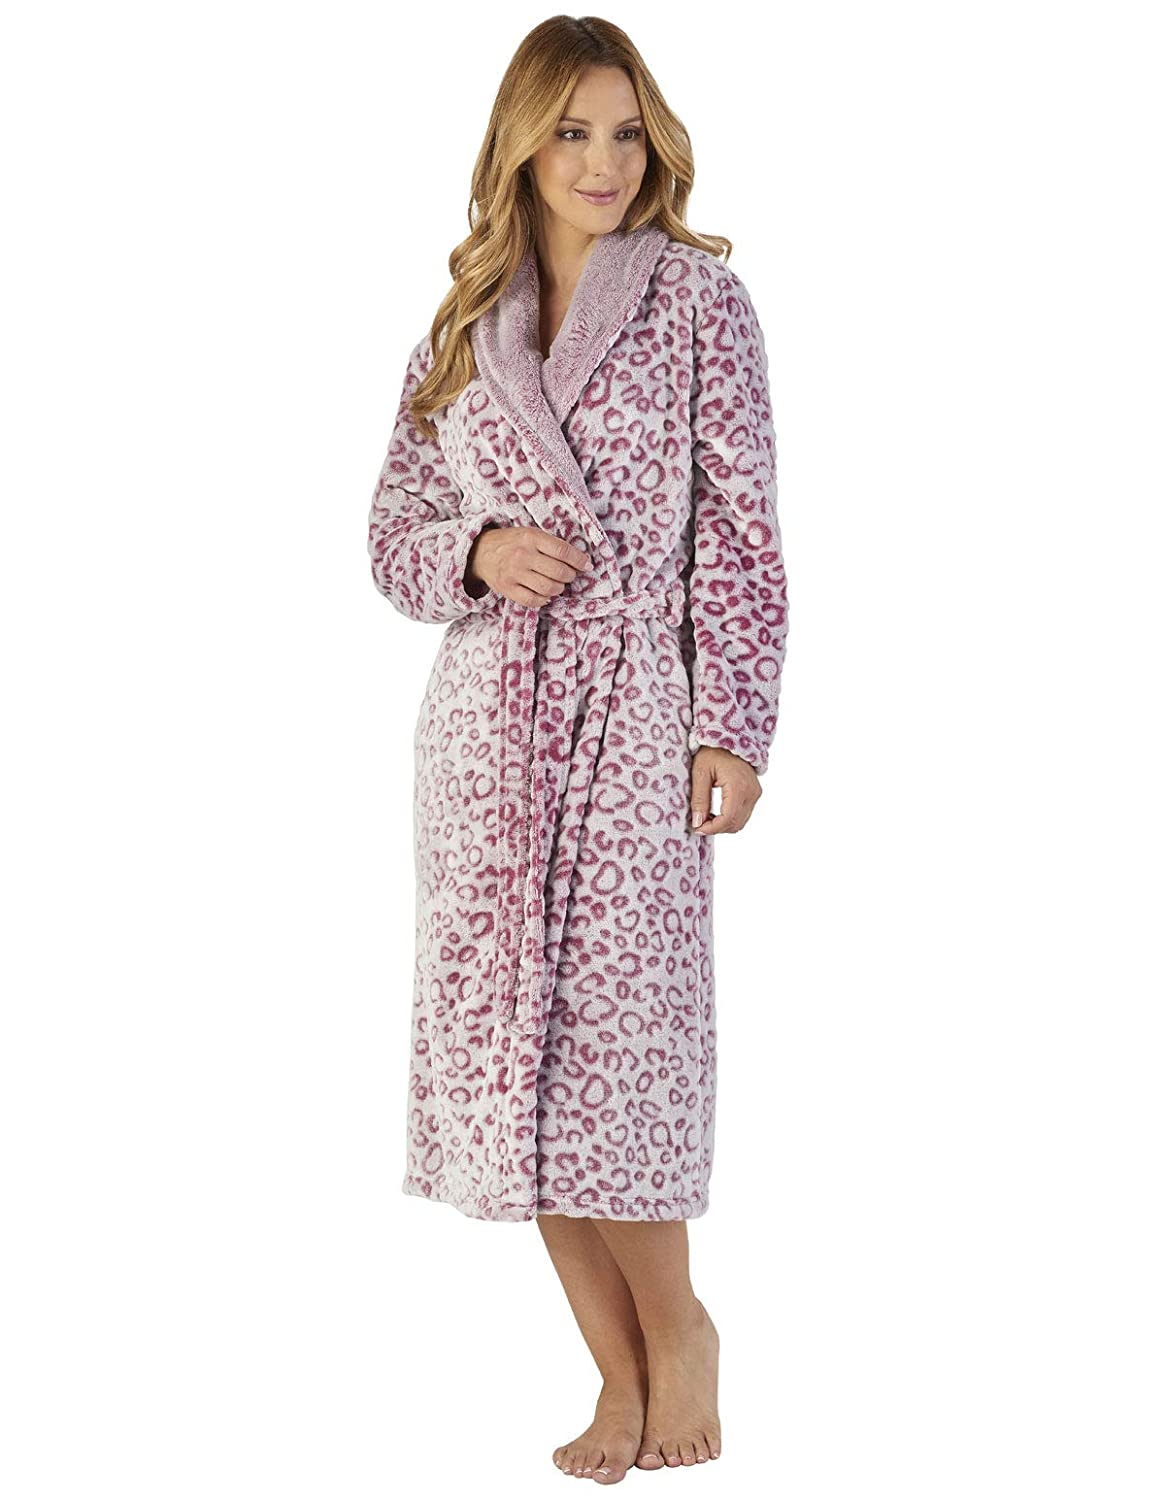 Slenderella HC2316 Women's Animal Pattern Leopard Print Robe Loungewear Bath Dressing Gown